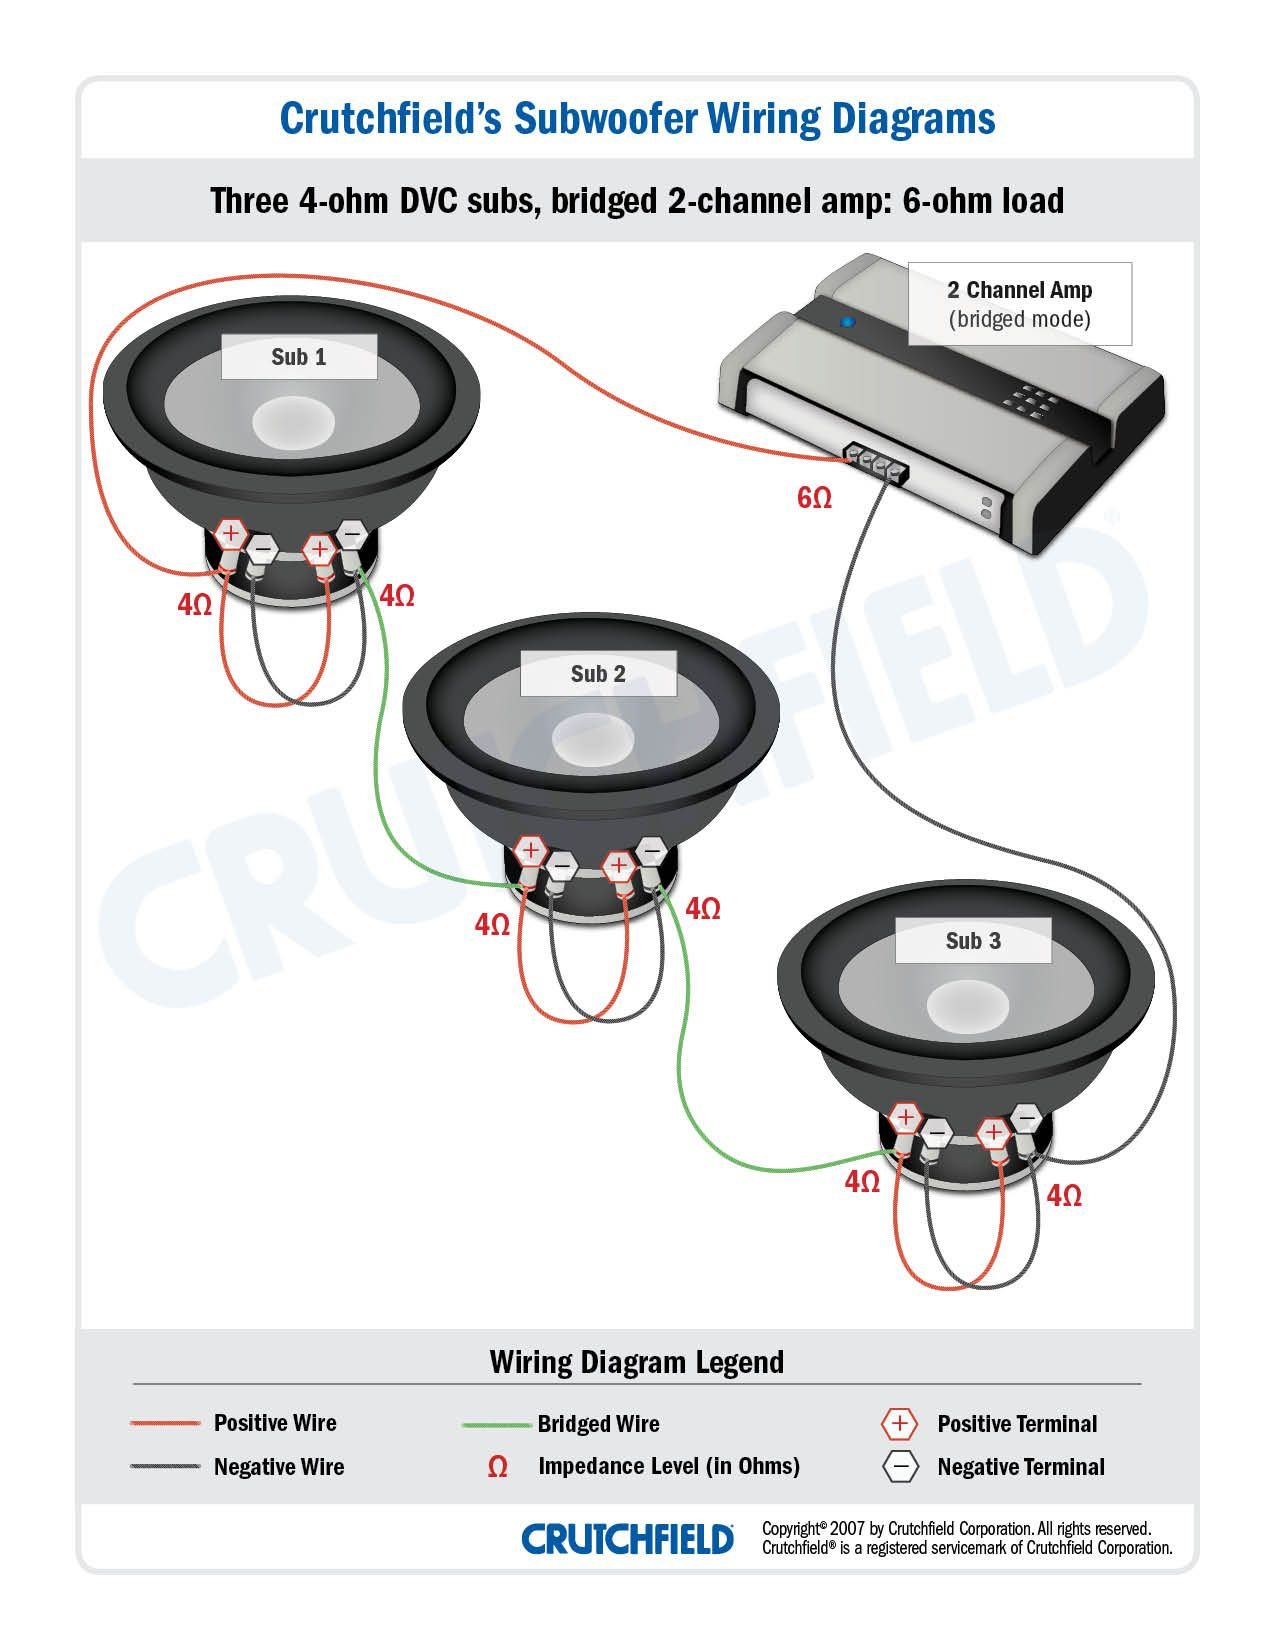 top 10 subwoofer wiring diagram free download 3 dvc 4 ohm 2 ch and ohm wiringdiagram 4 ohm speaker wiring kicker wiring dvc 4 ohm [ 1275 x 1650 Pixel ]